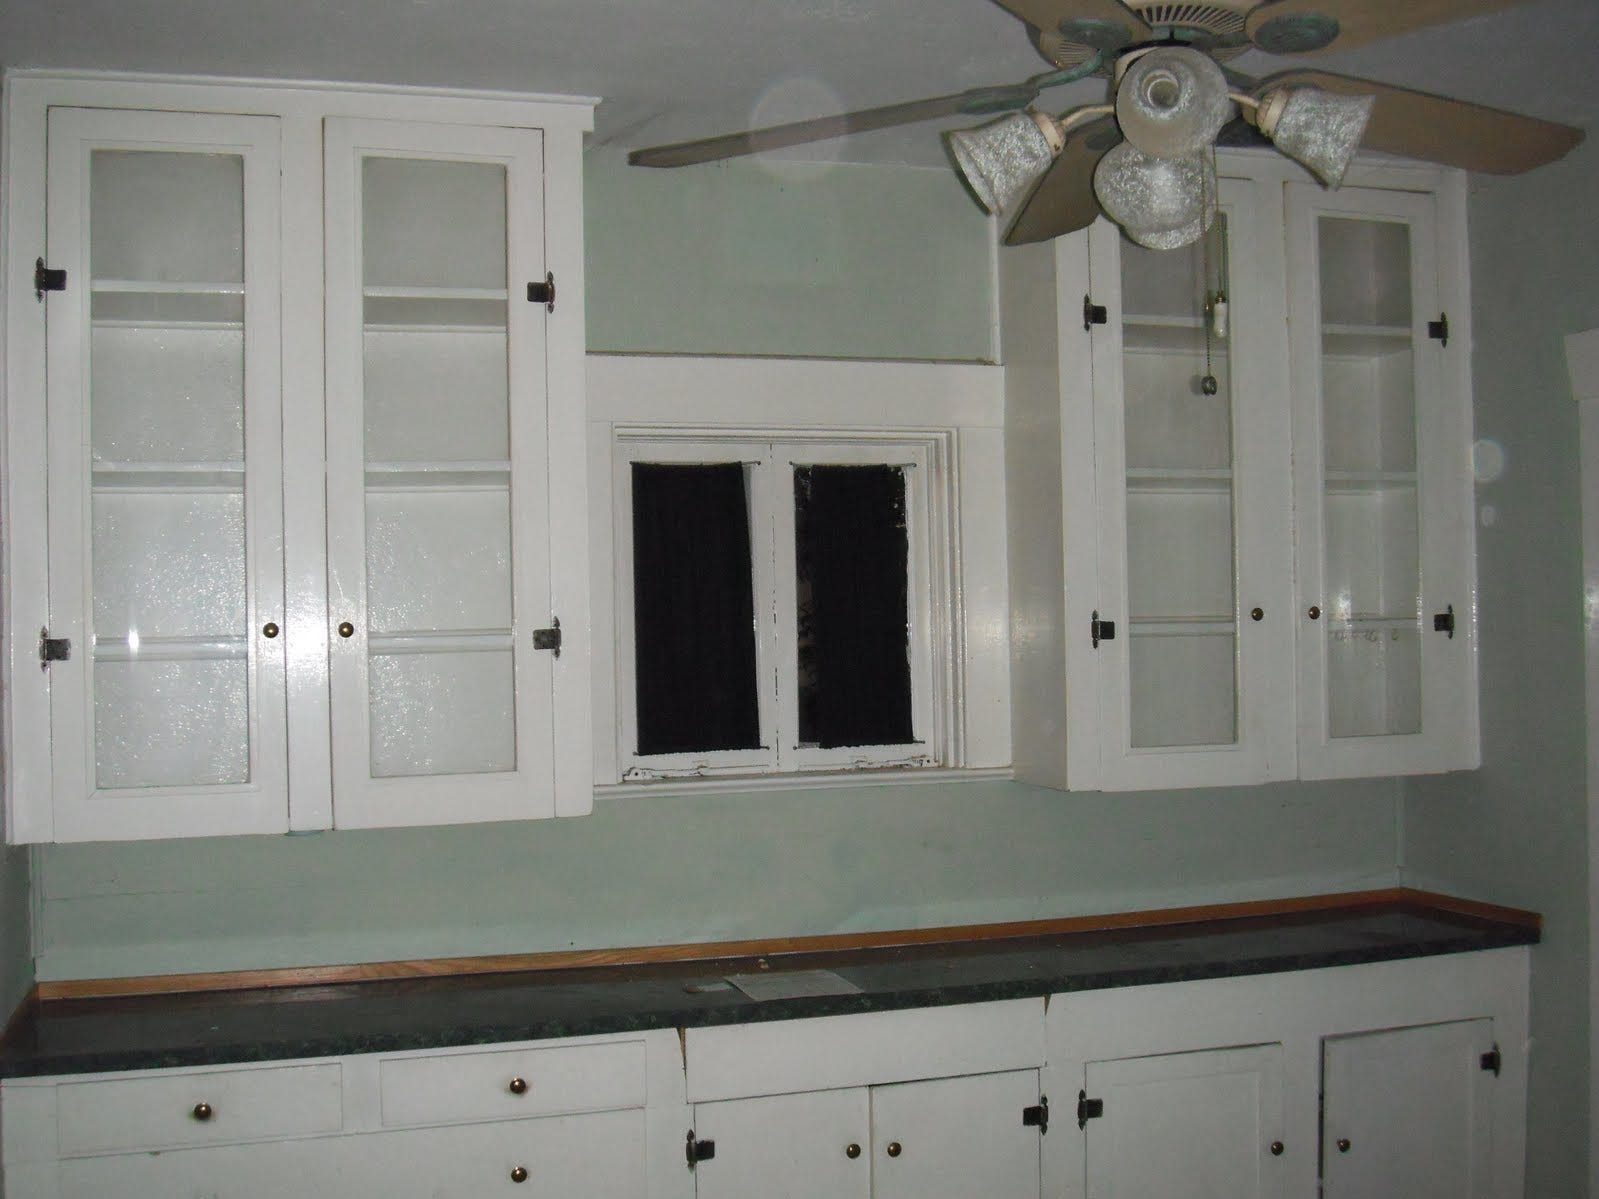 2010 picture of original kitchen cabinets (now dining room).